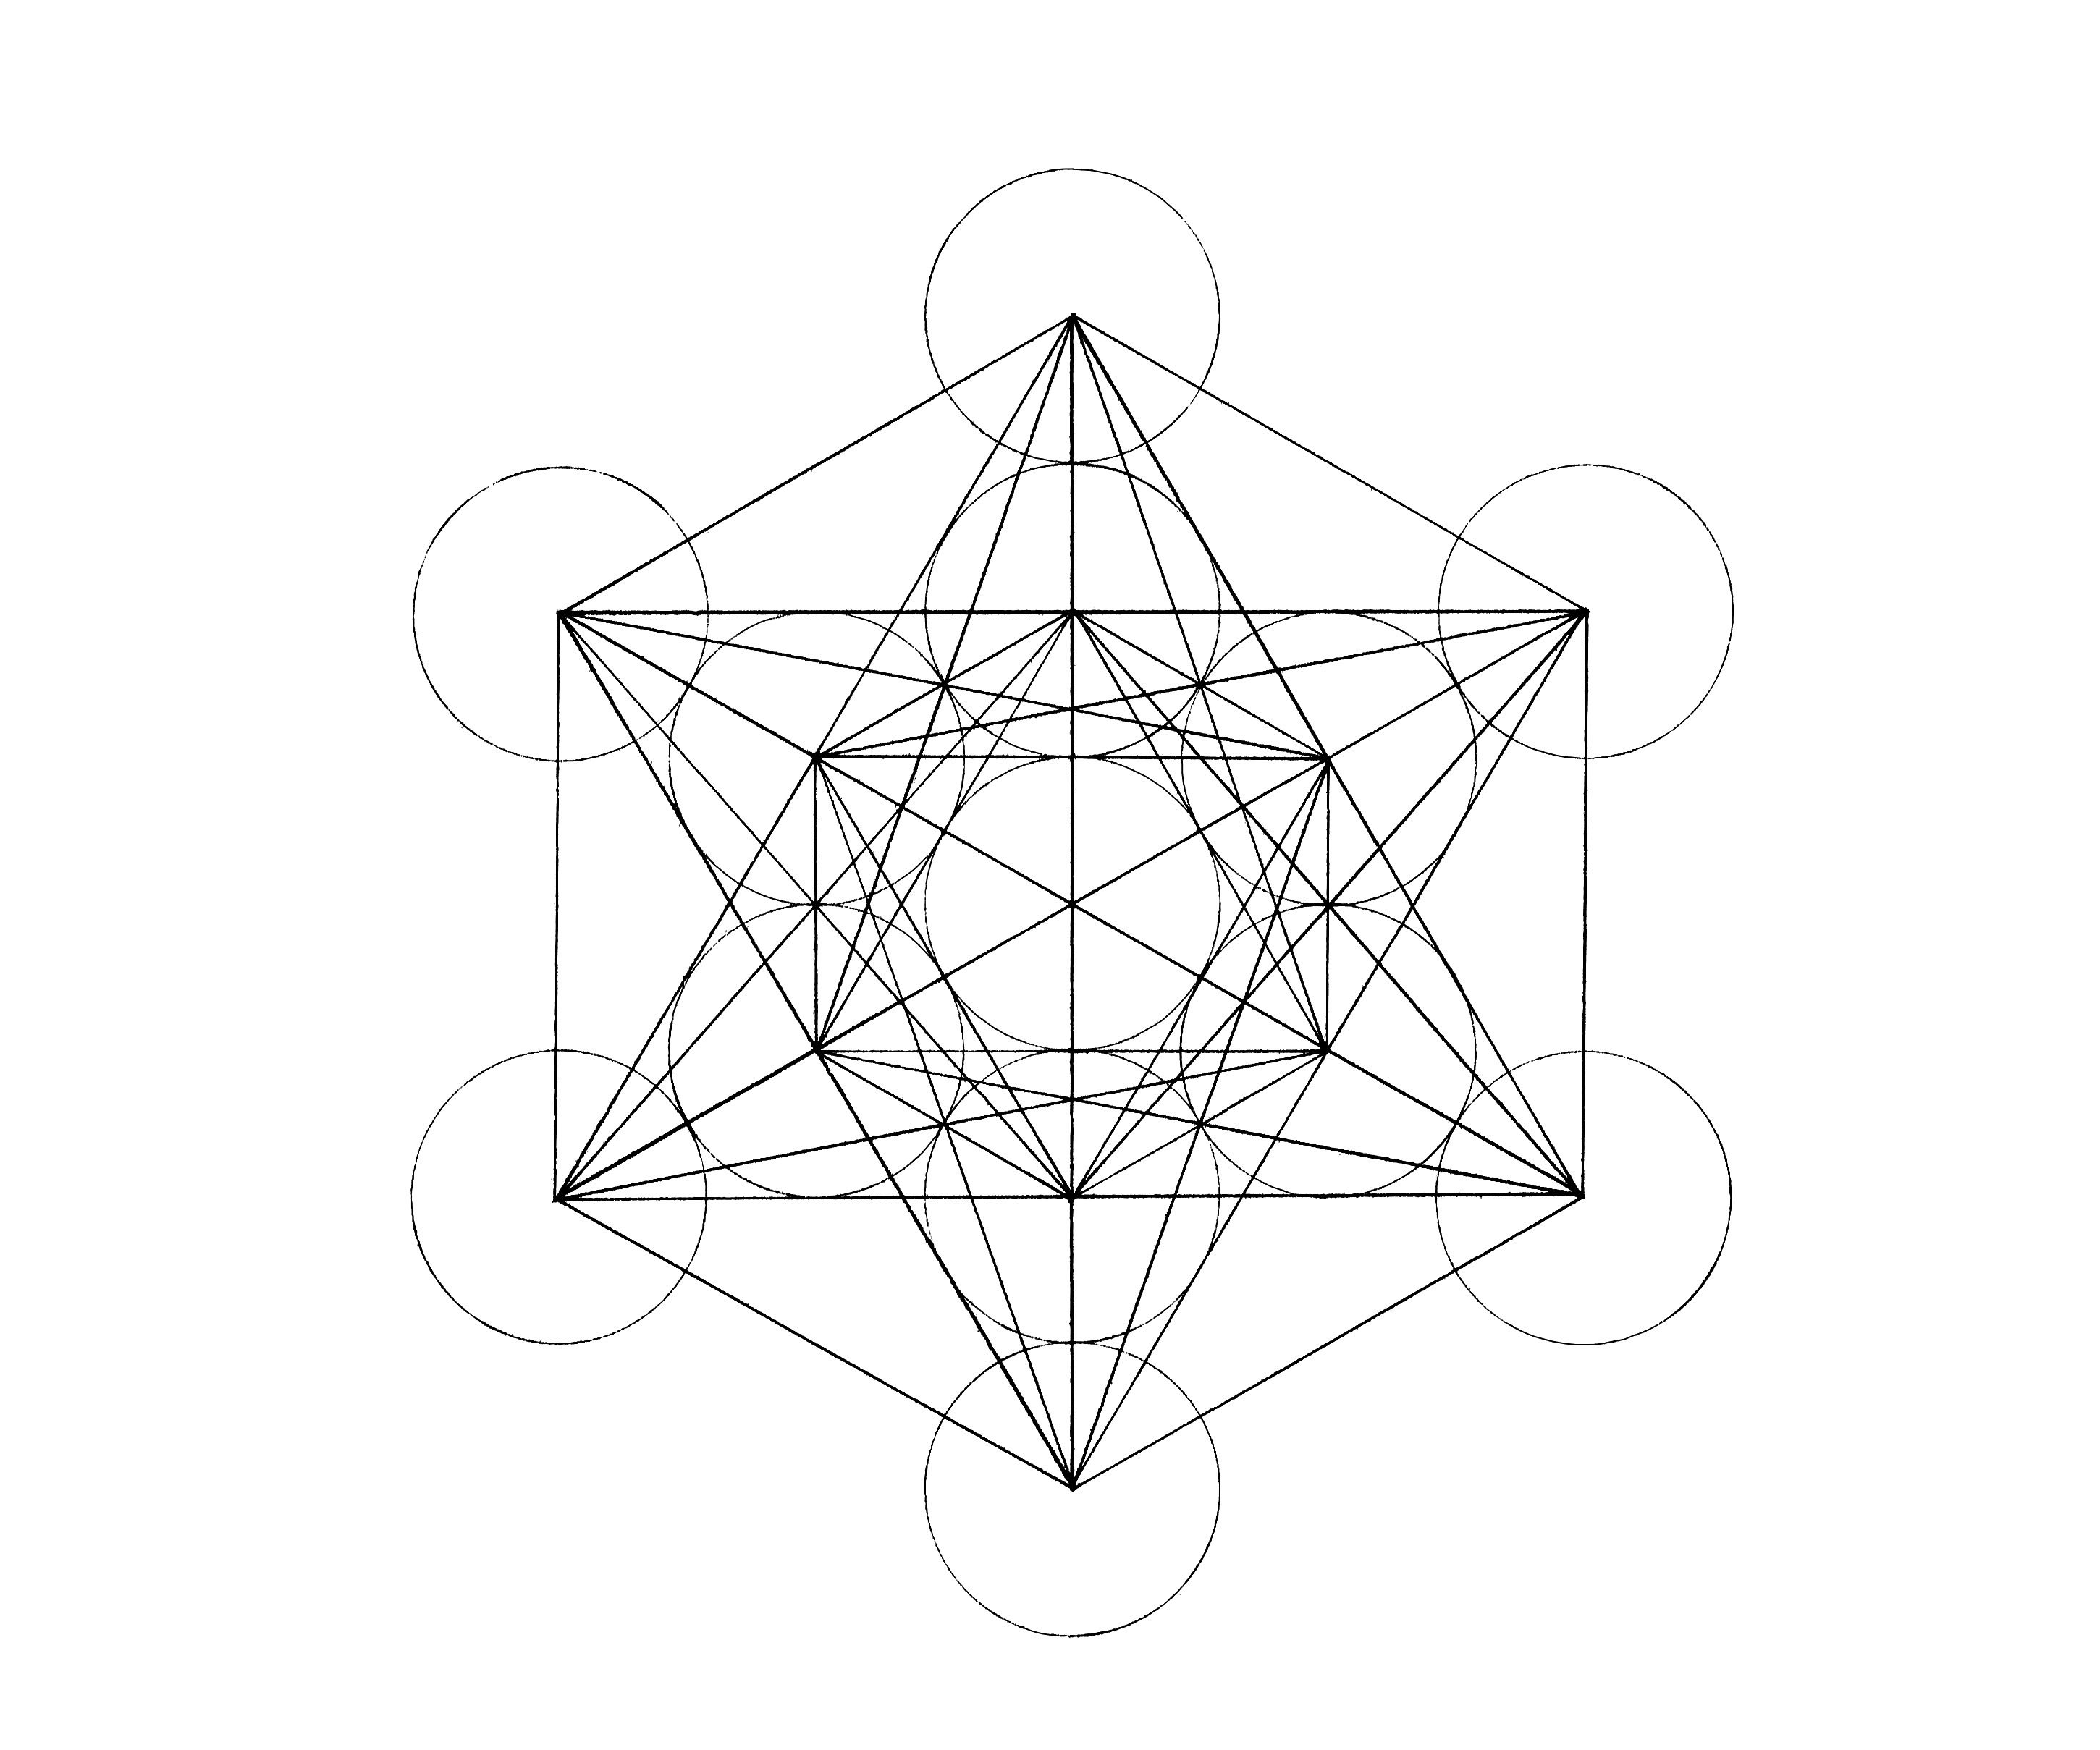 Drawn compass geometry Cube: Metatron's Draw Marriage it…